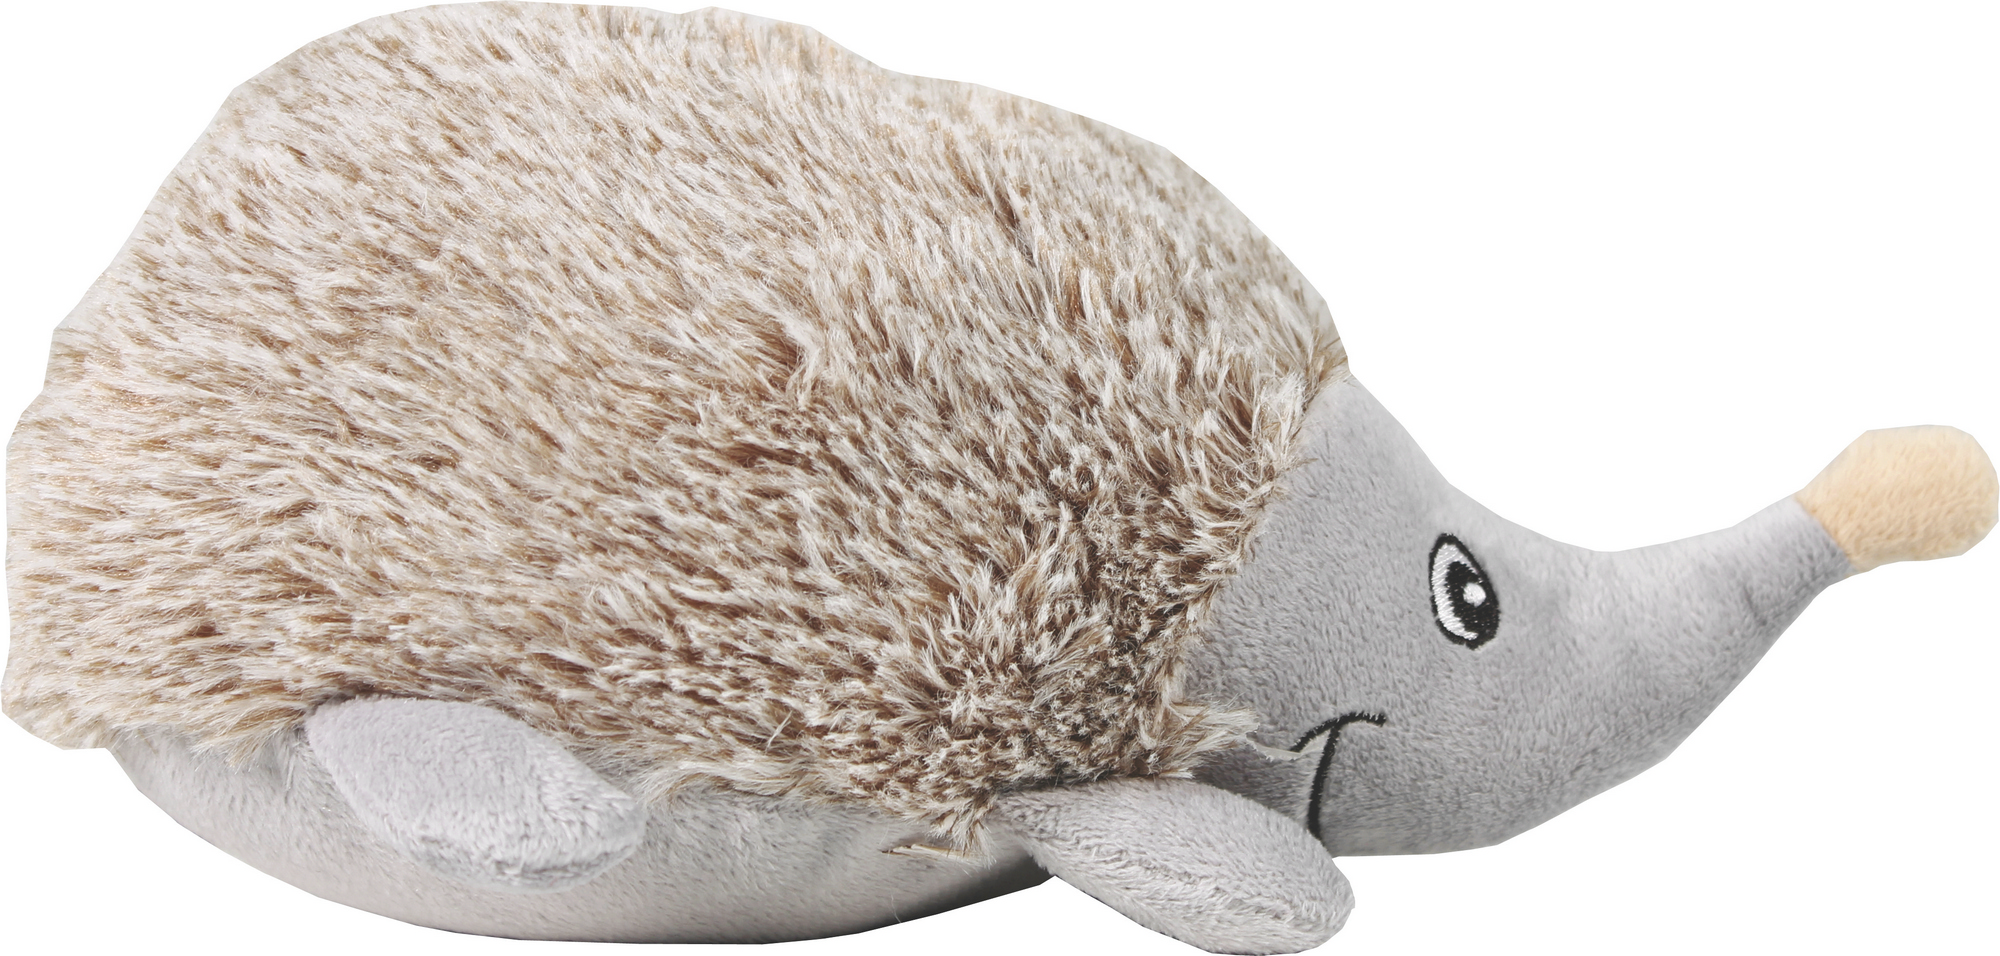 Spot Nosy Hedgehog Plush Dog Toy